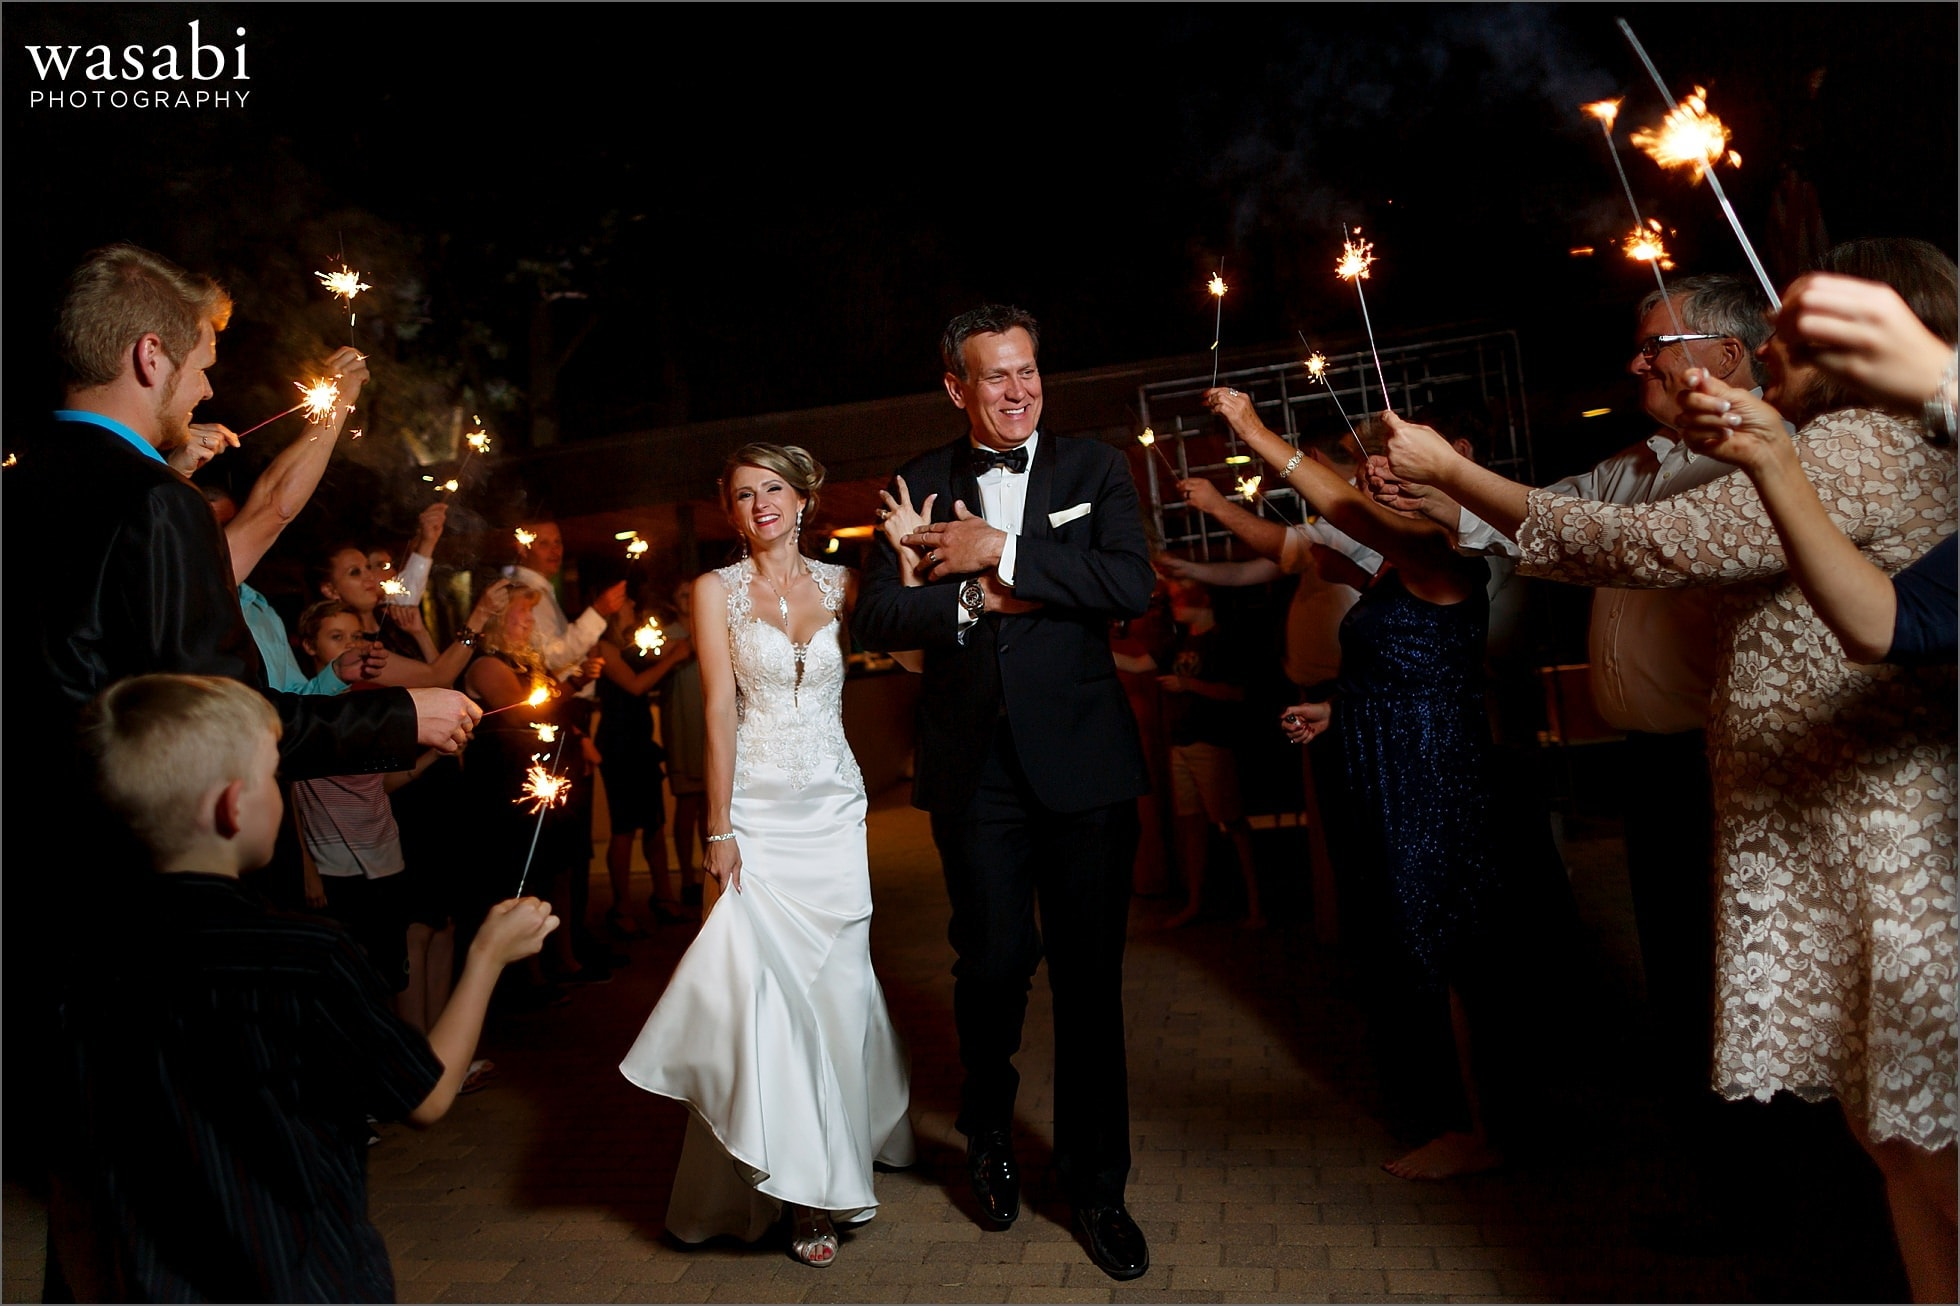 wedding couple bride and groom leave with a sparkler exit after wedding reception